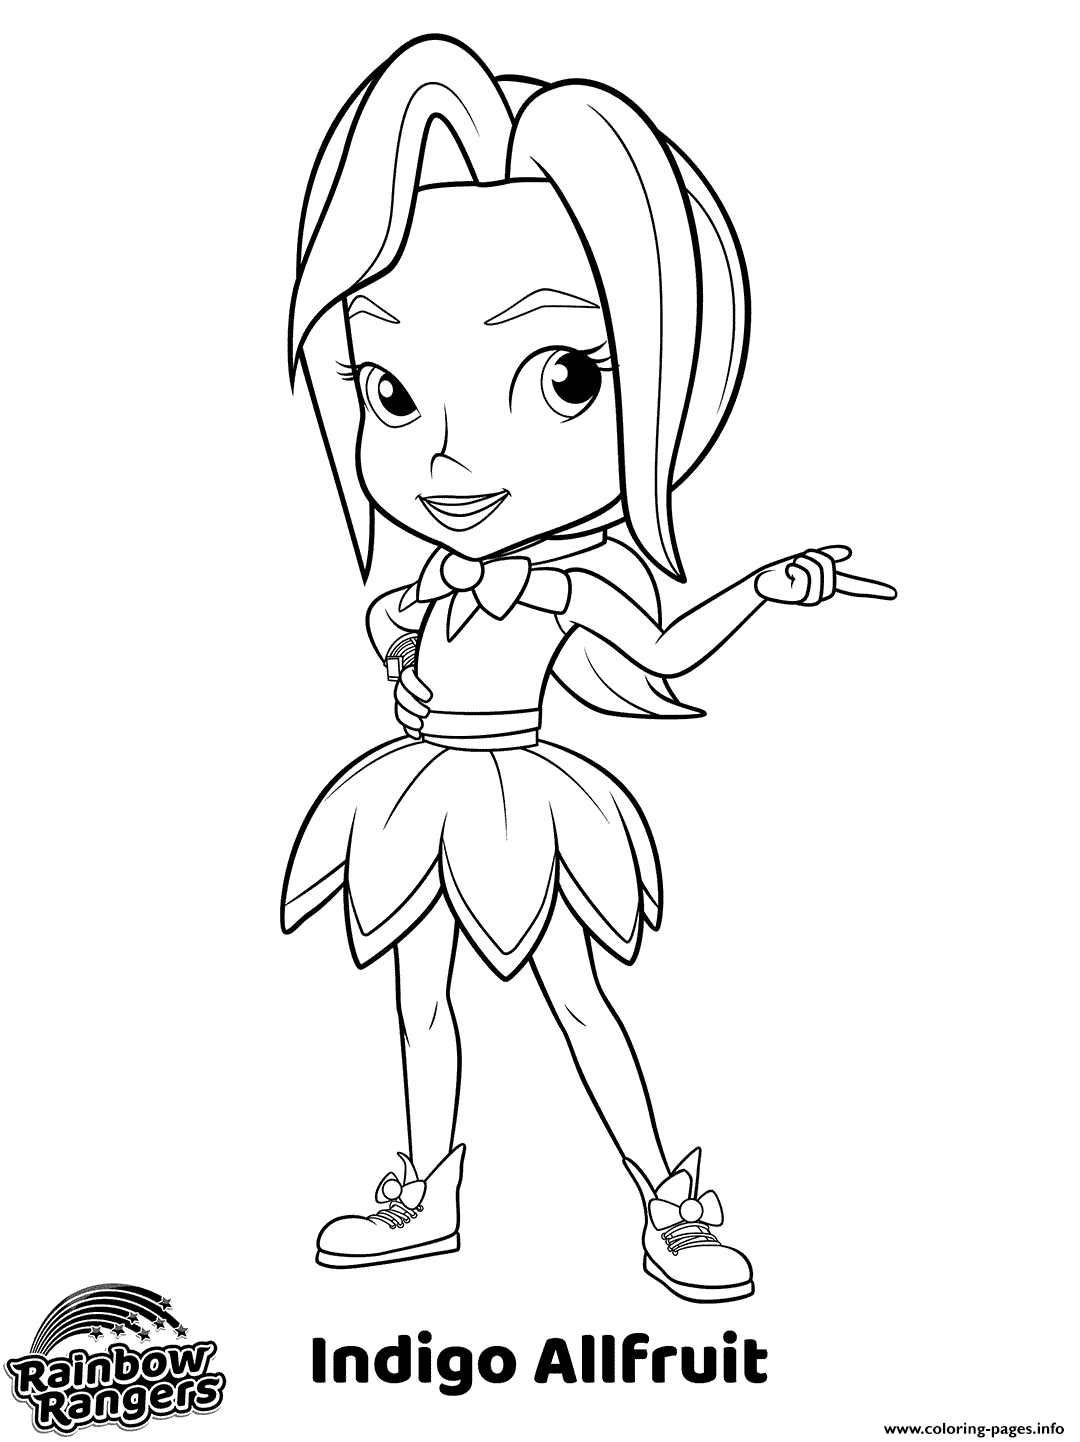 Rainbow Rangers Coloring Pages - Scenery Mountains